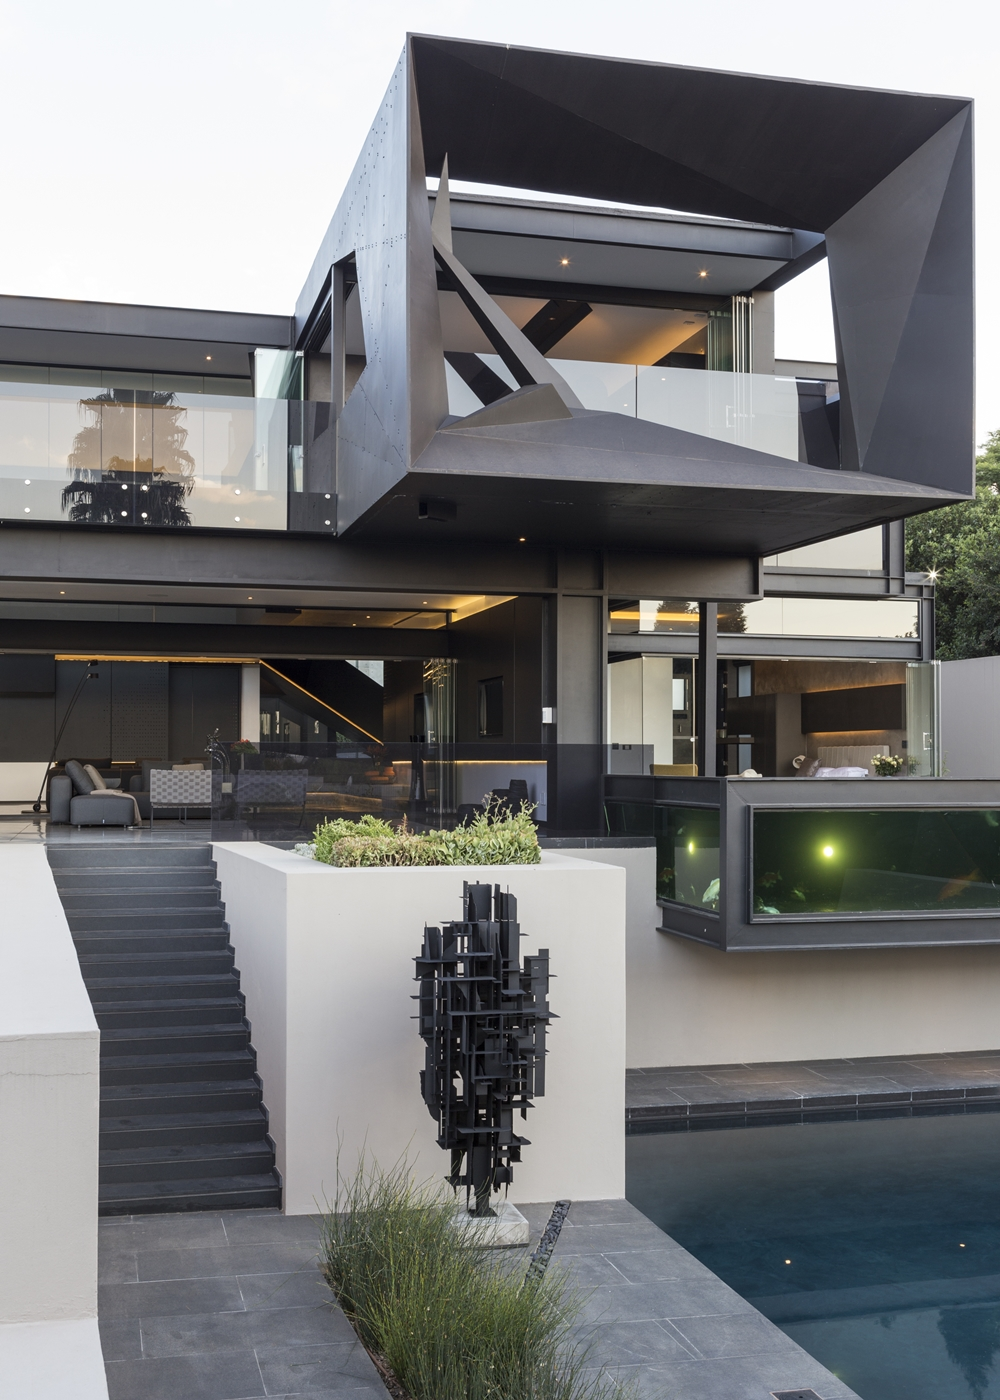 Best houses in the world amazing kloof road house for World best home interior design